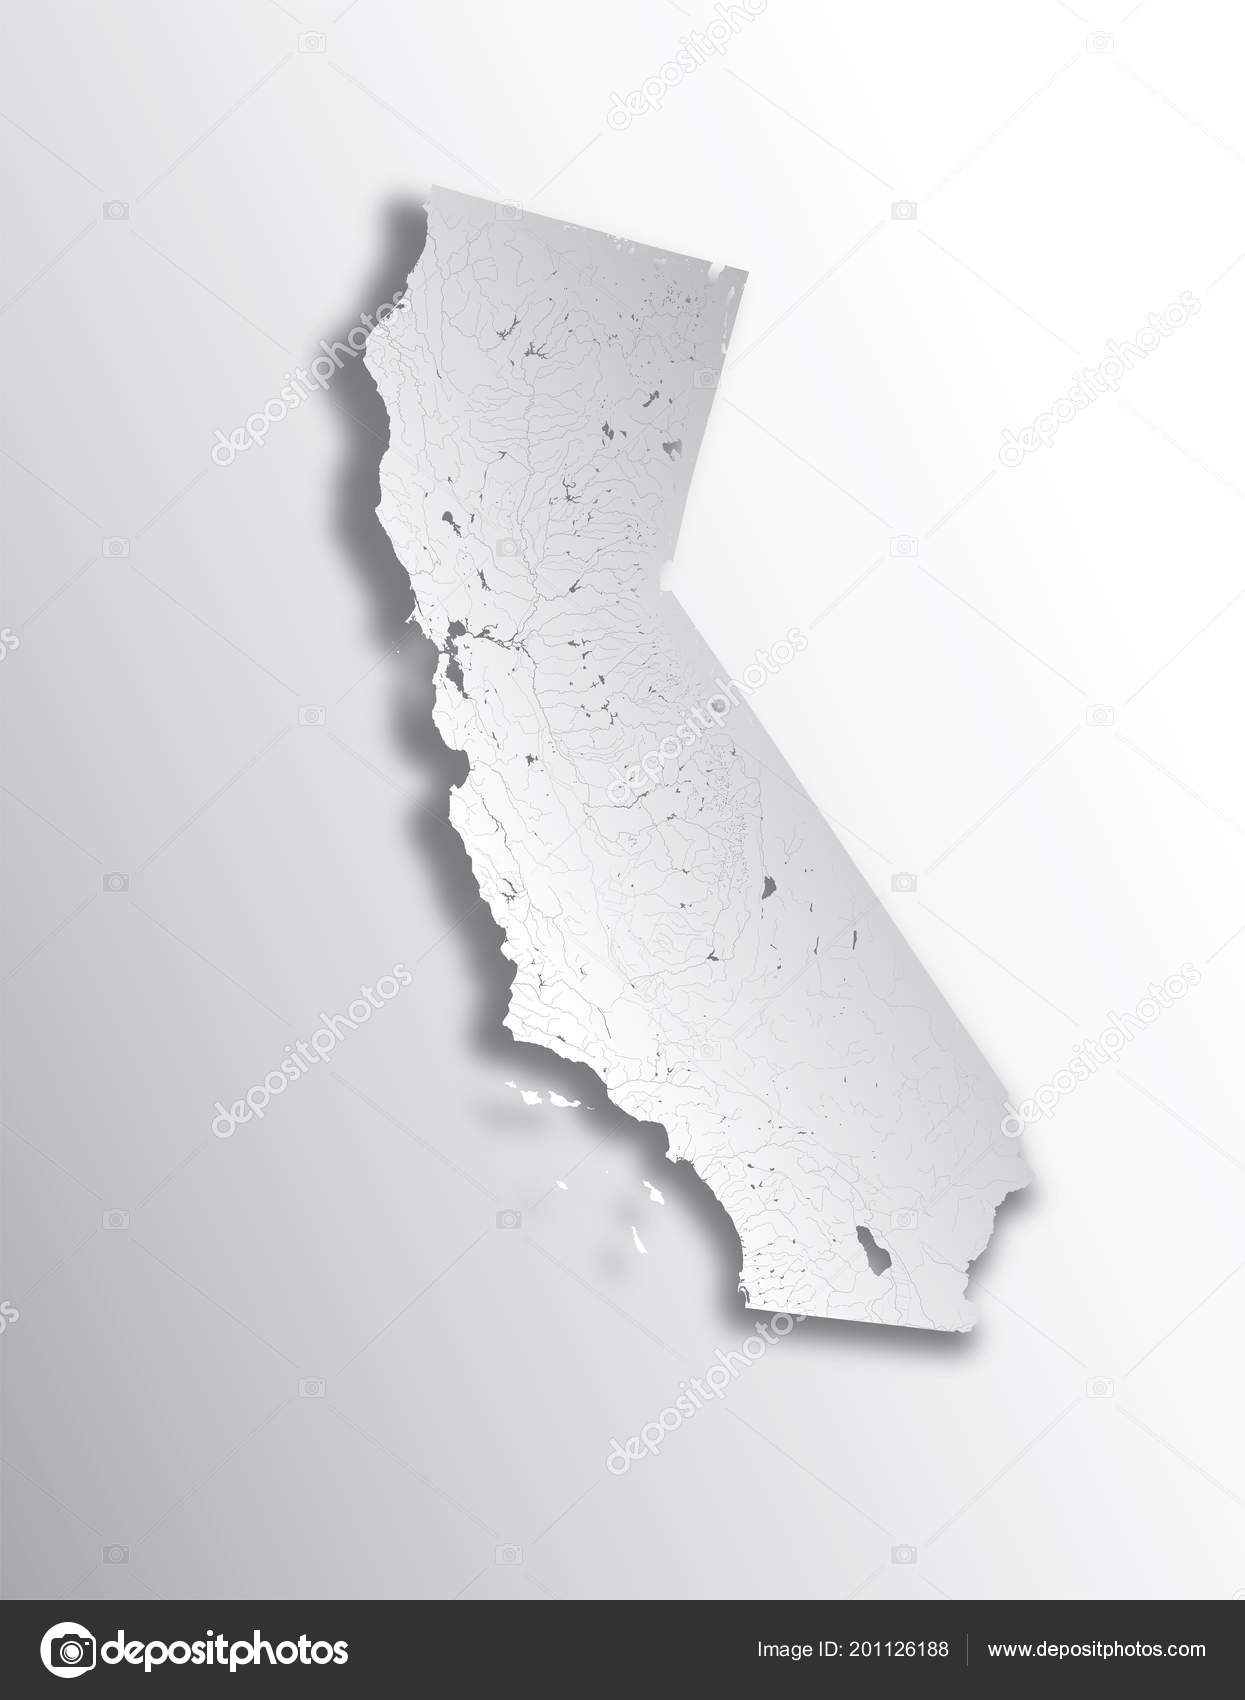 Map Of California Lakes.States Map California Paper Cut Effect Hand Made Rivers Lakes